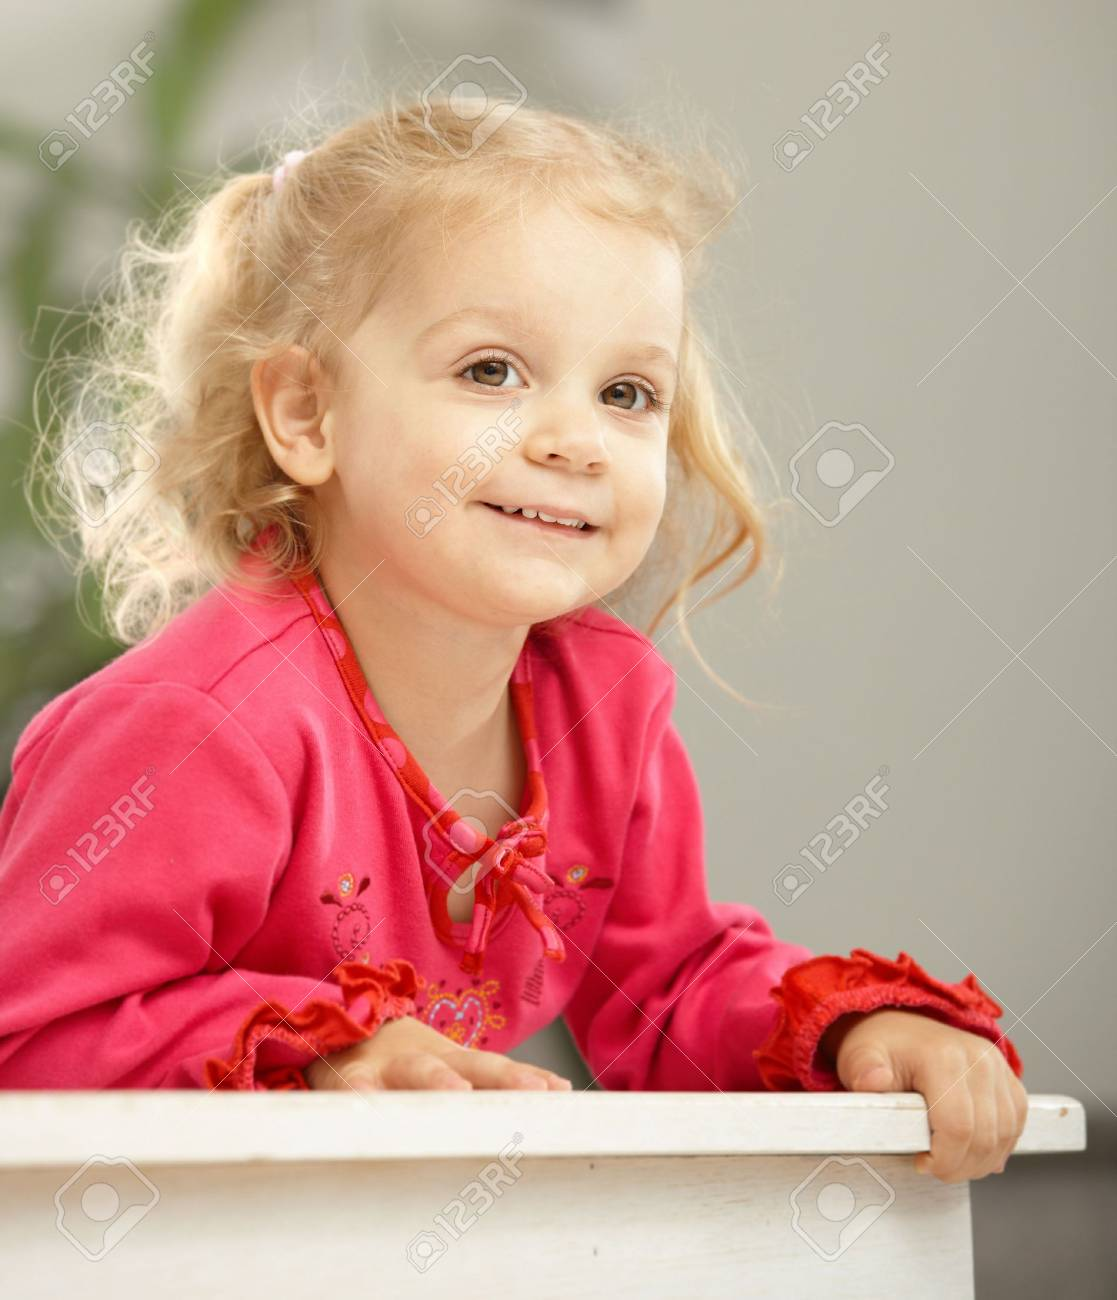 Happy two-year-old leaning on counter smiling. Stock Photo - 6374431